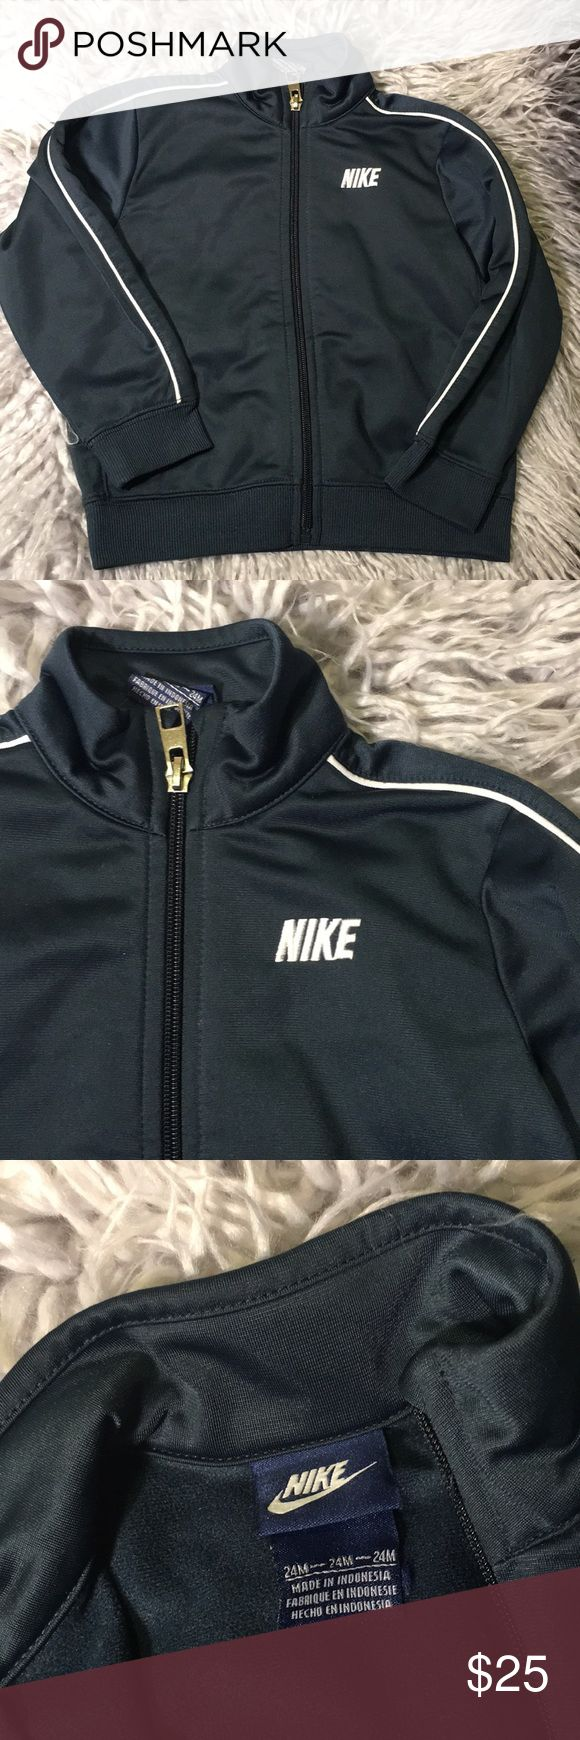 Nike track jacket 24 Months Great condition zipper jacket for boys. Side pockets. White trimming. Plan backside. Navy blue. Nike Shirts & Tops Sweatshirts & Hoodies